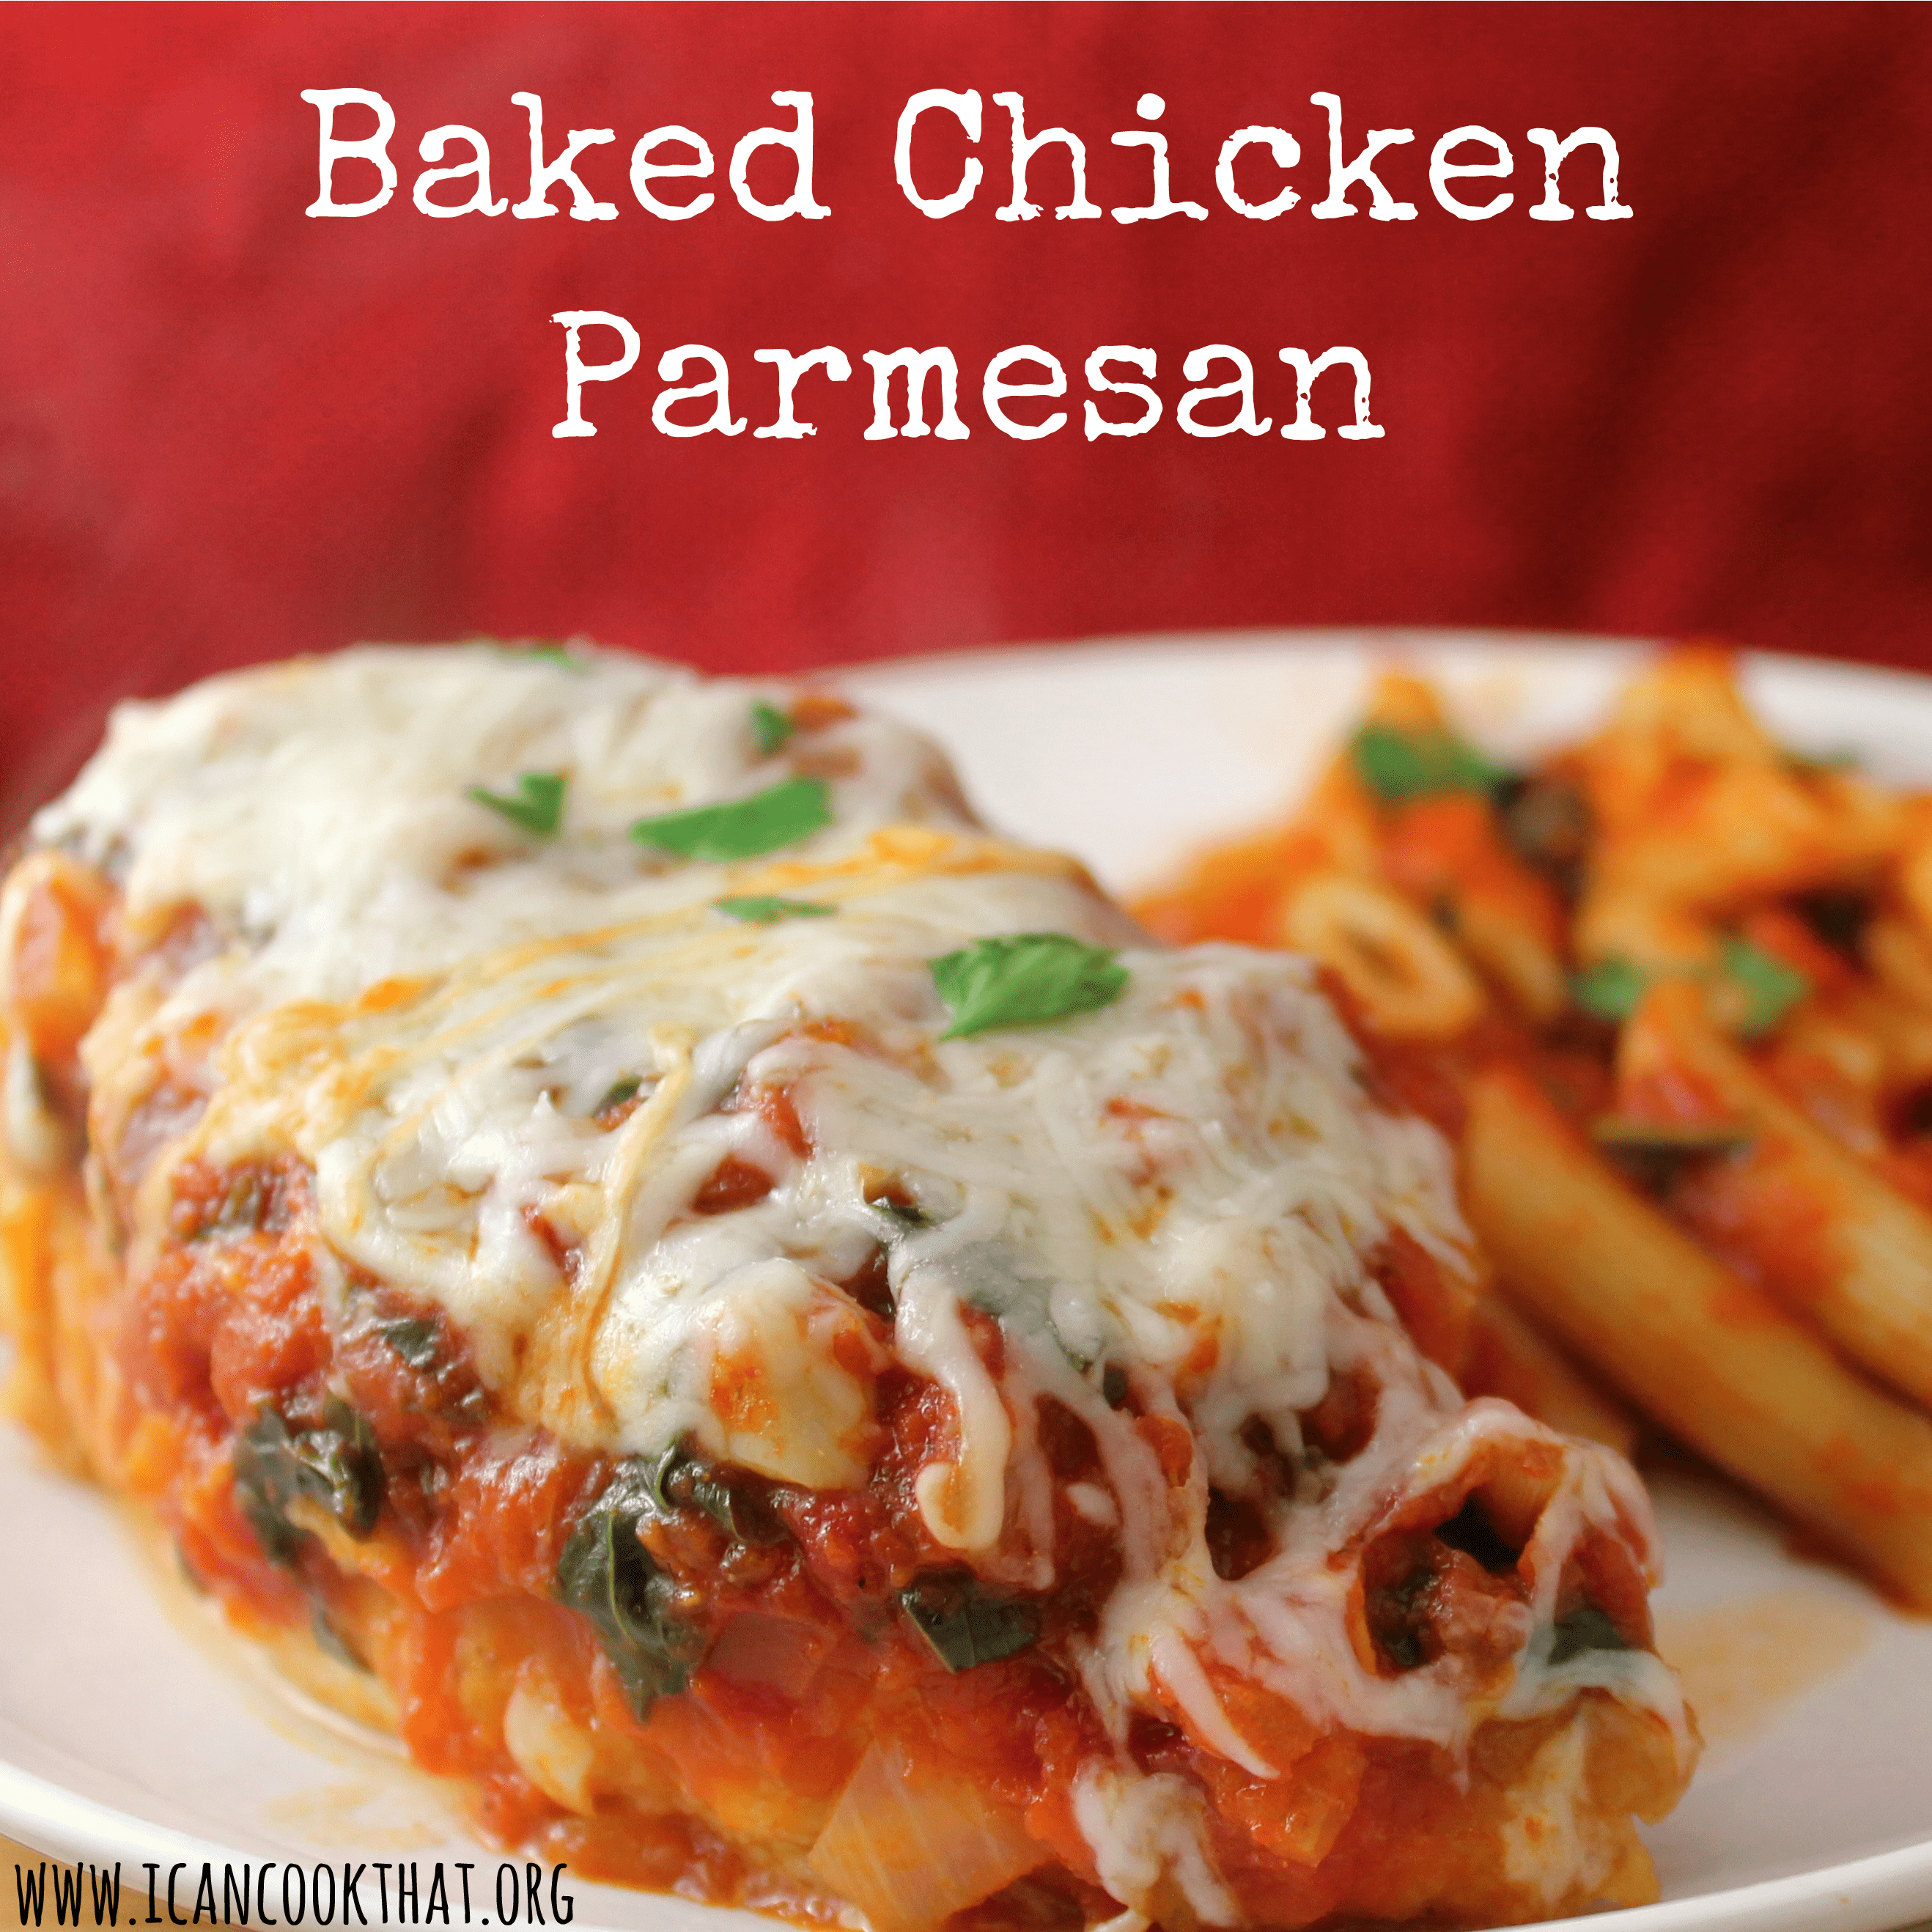 Baked Chicken Parmesan Recipe I Can Cook That